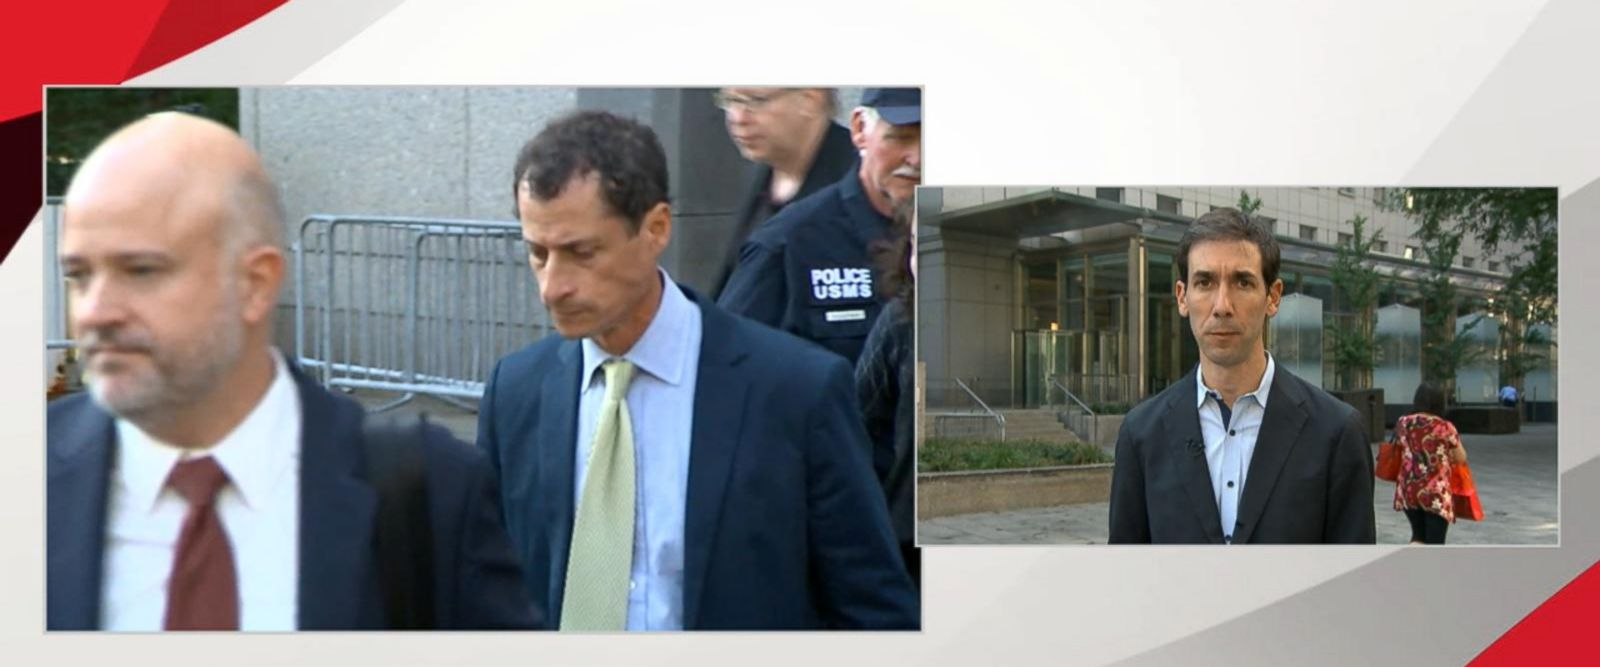 VIDEO: Anthony Weiner sentenced in sexting trial